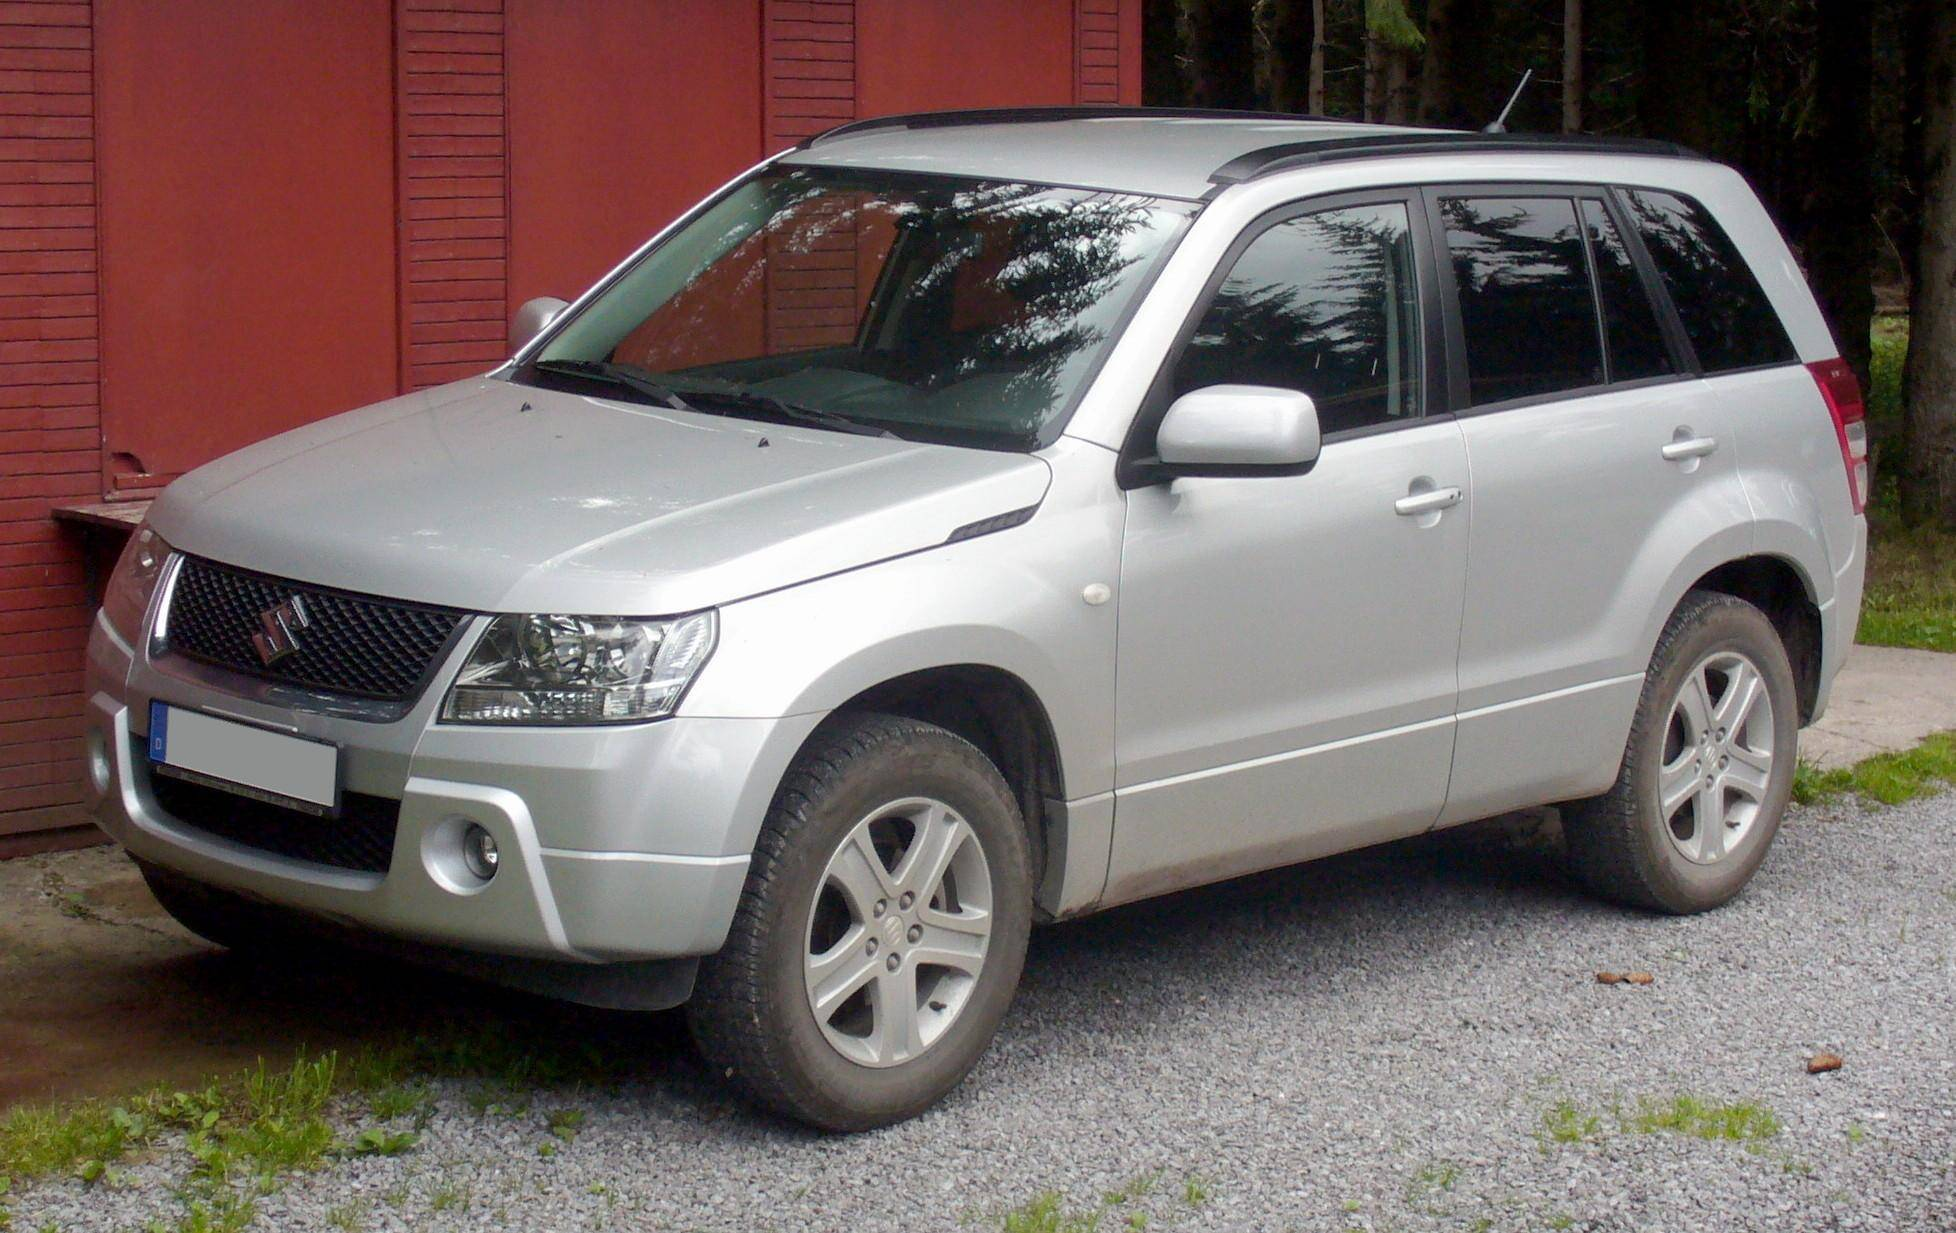 2007 suzuki grand vitara base 4dr suv 2 7l v6 4x4 manual. Black Bedroom Furniture Sets. Home Design Ideas